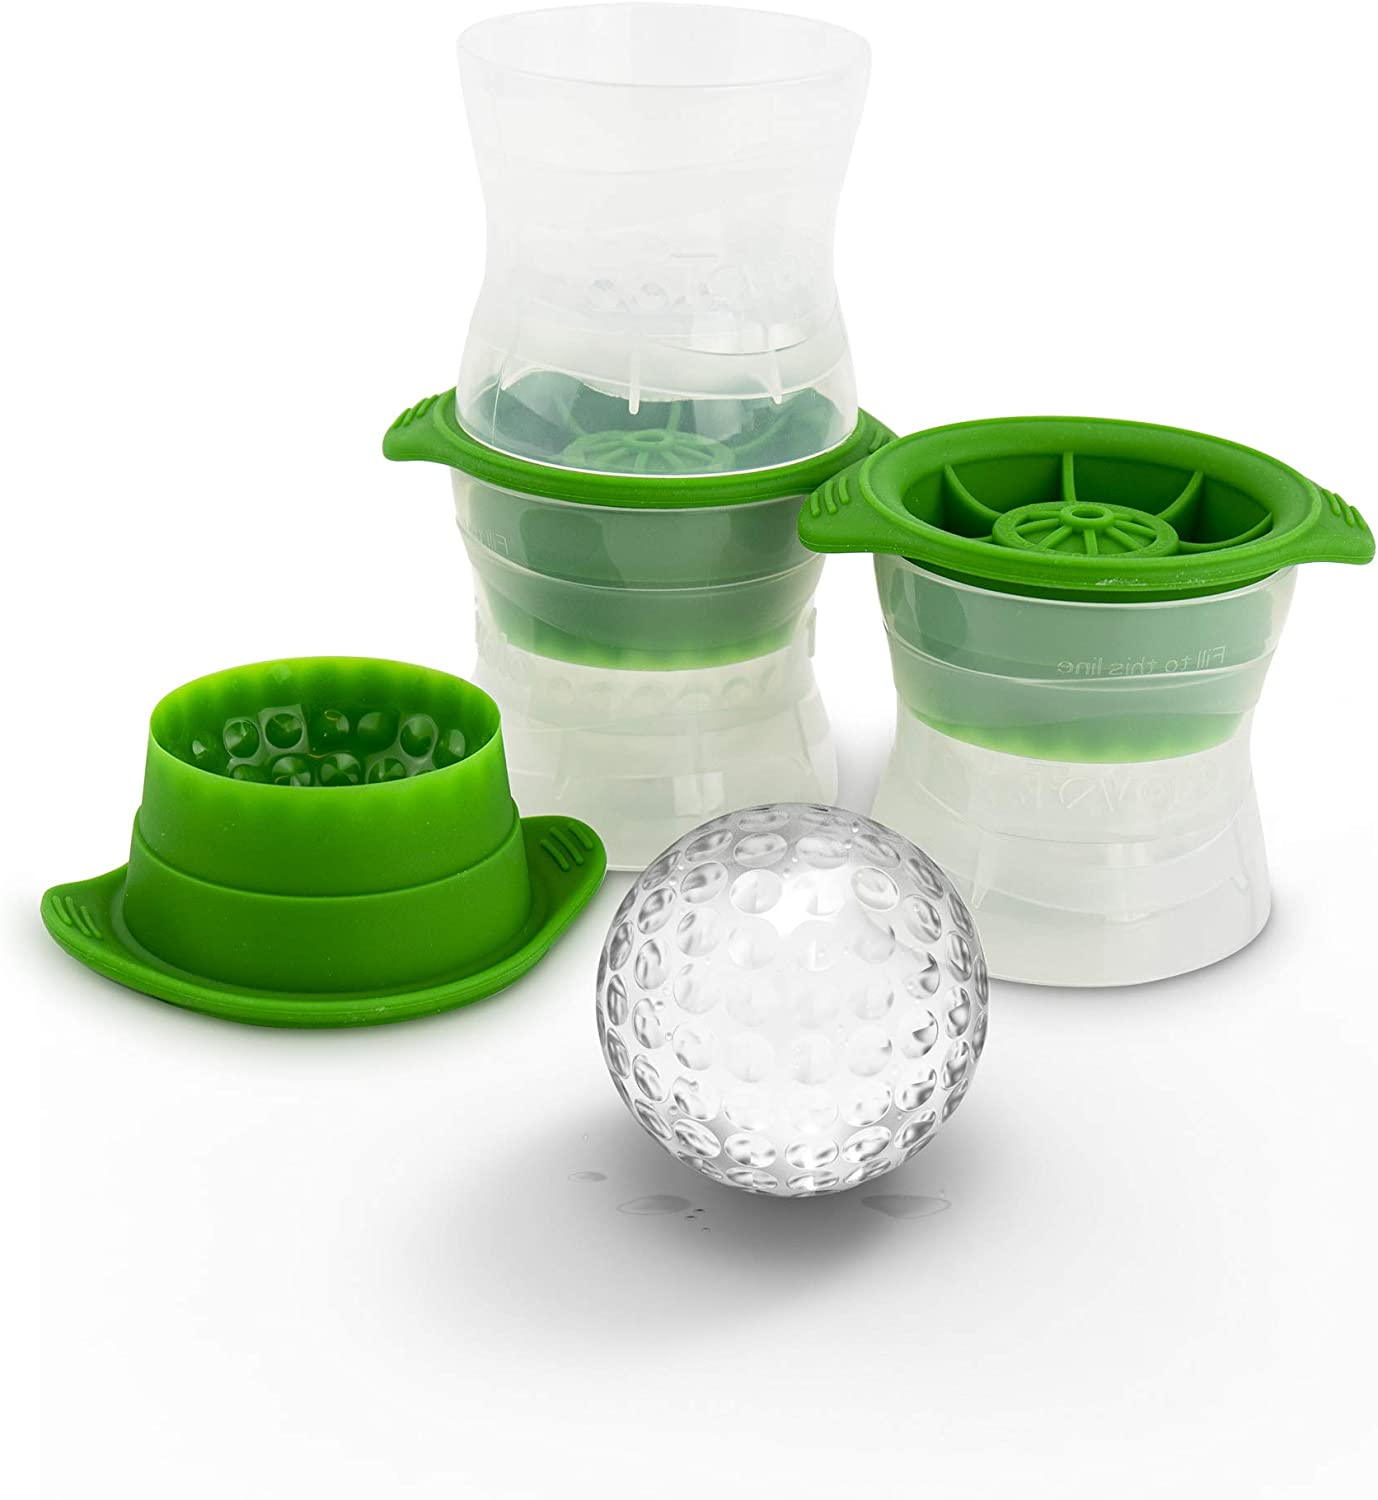 Tovolo Set of 3 Leak-Free, Slow-Melting Whisky & Spirits, Golf Ball Ice Novelty Drink Molds, Green, Sphere